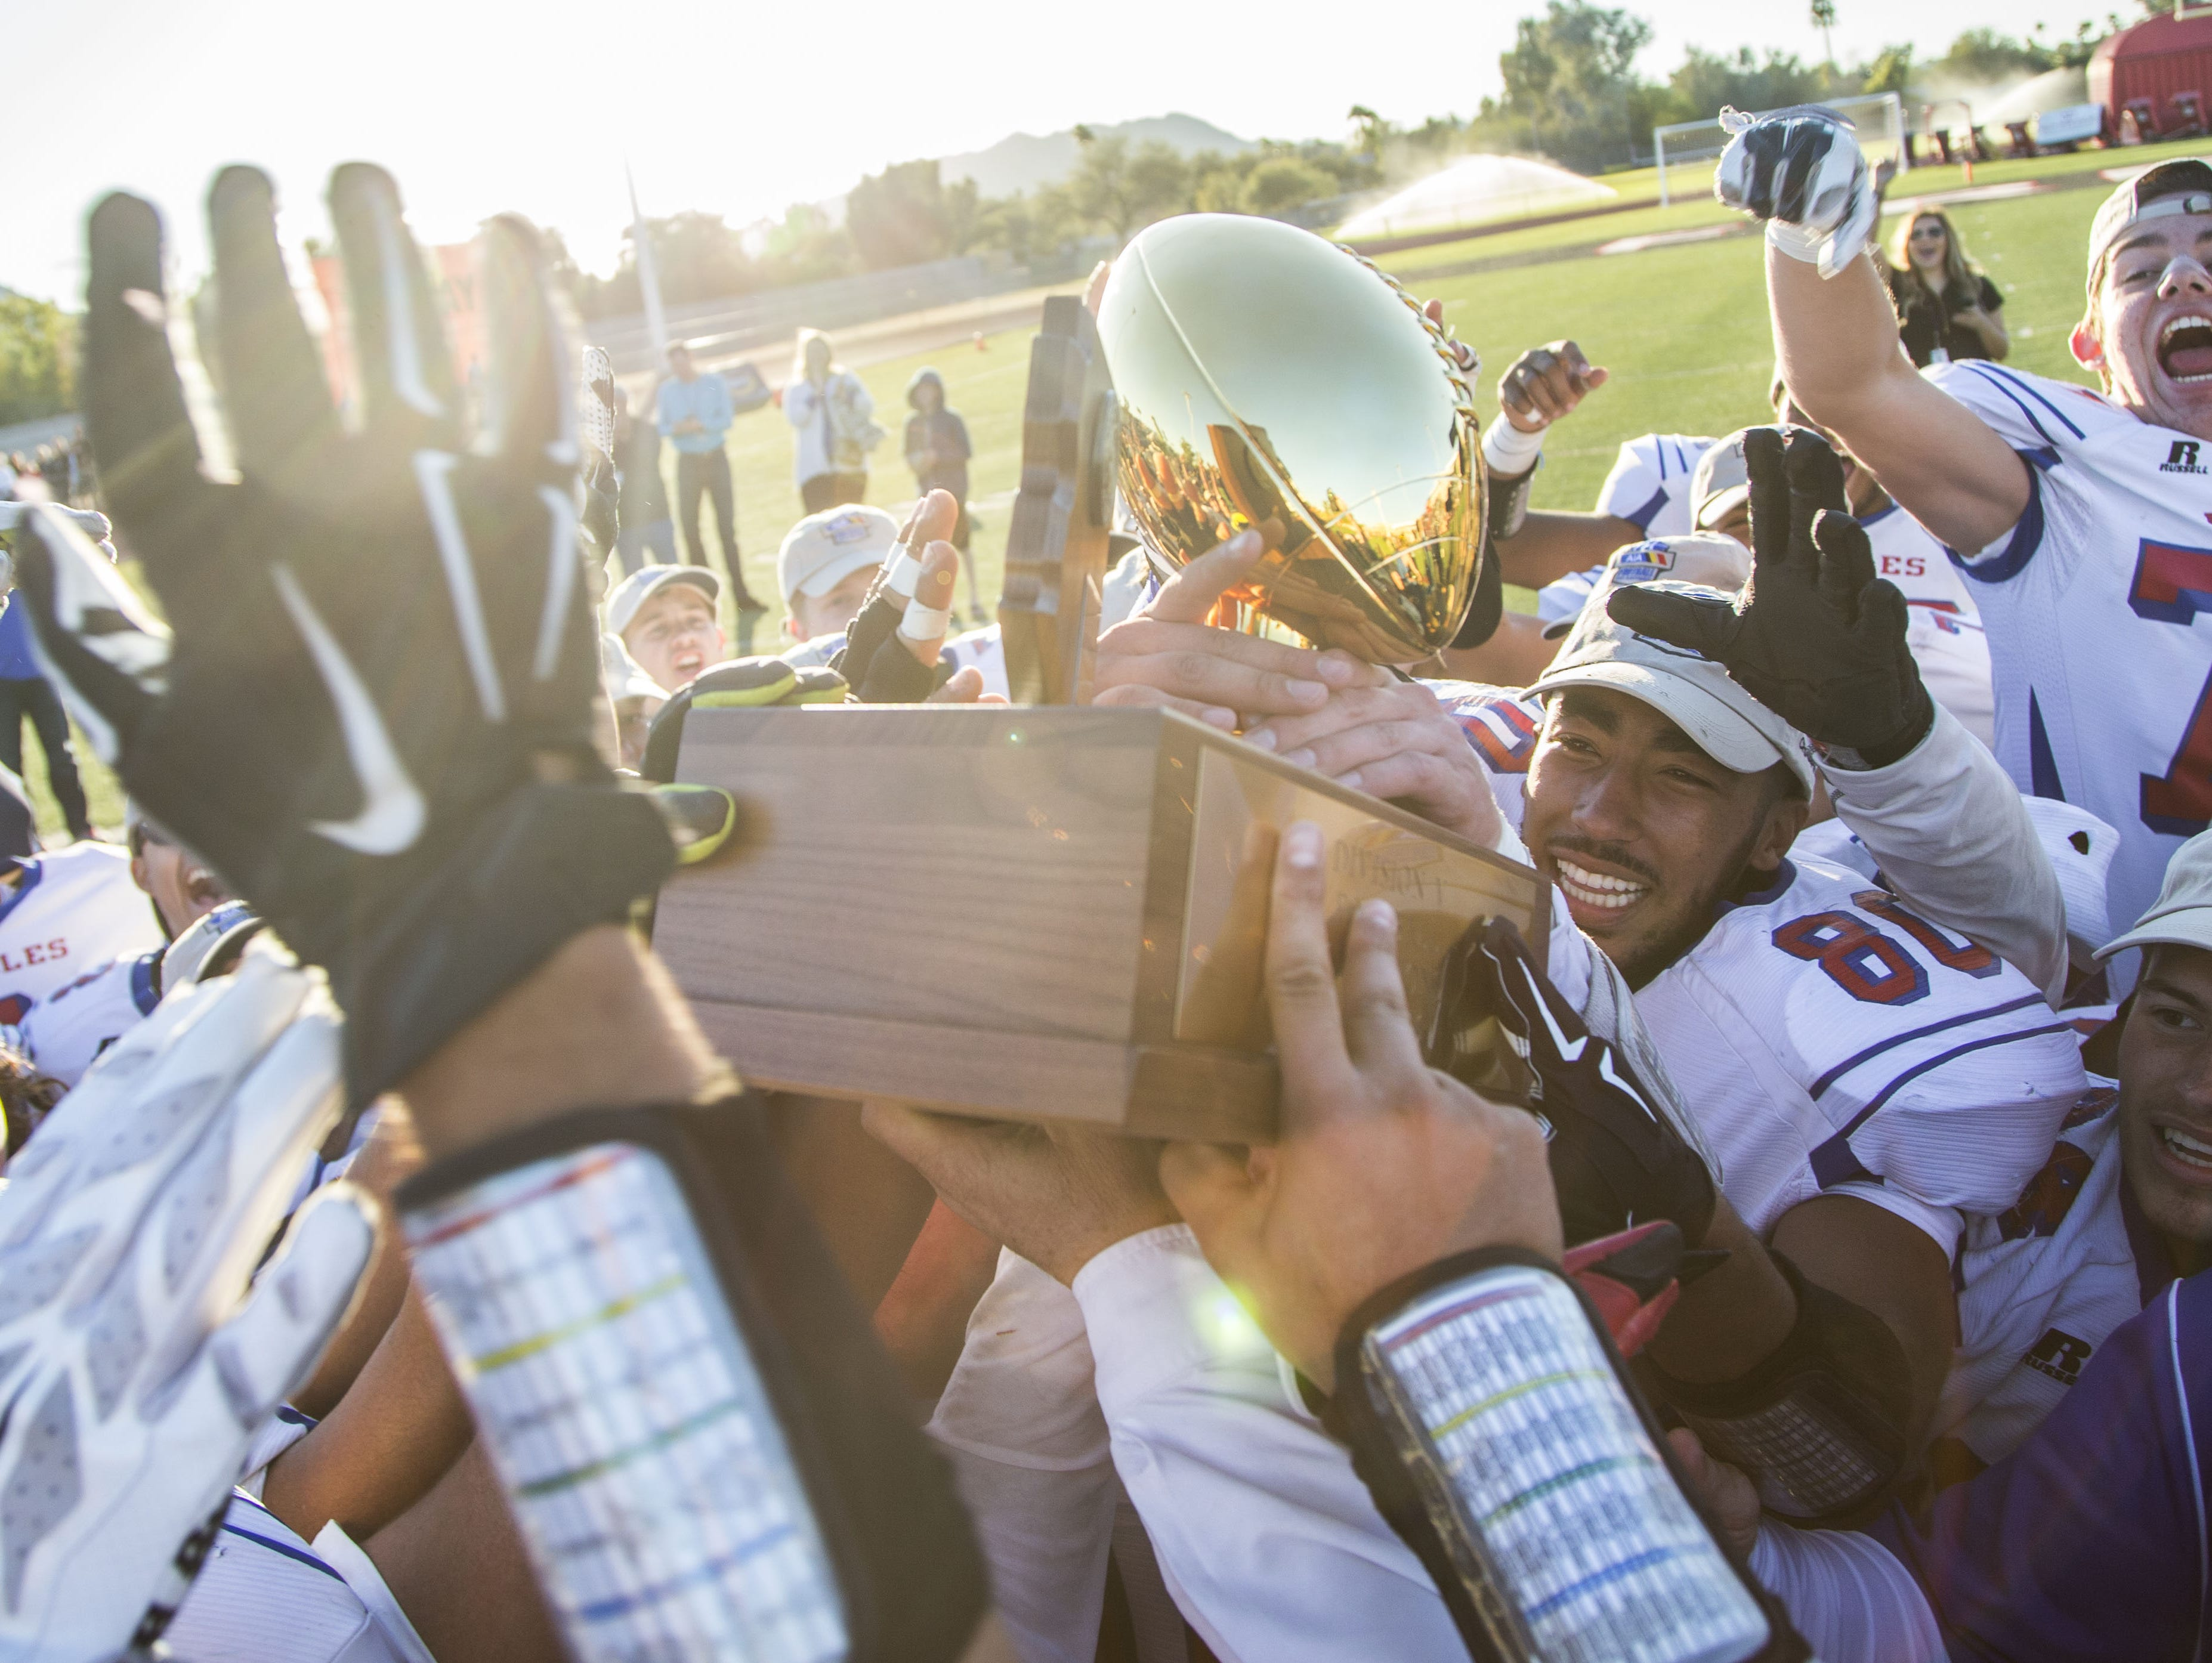 Joy Christian's Isaiah Goodspeed (80) lifts the trophy with his teammates after winning the Division V State Championship against Benson at Chaparral High School on Nov. 28, 2015 in Scottsdale Ariz.